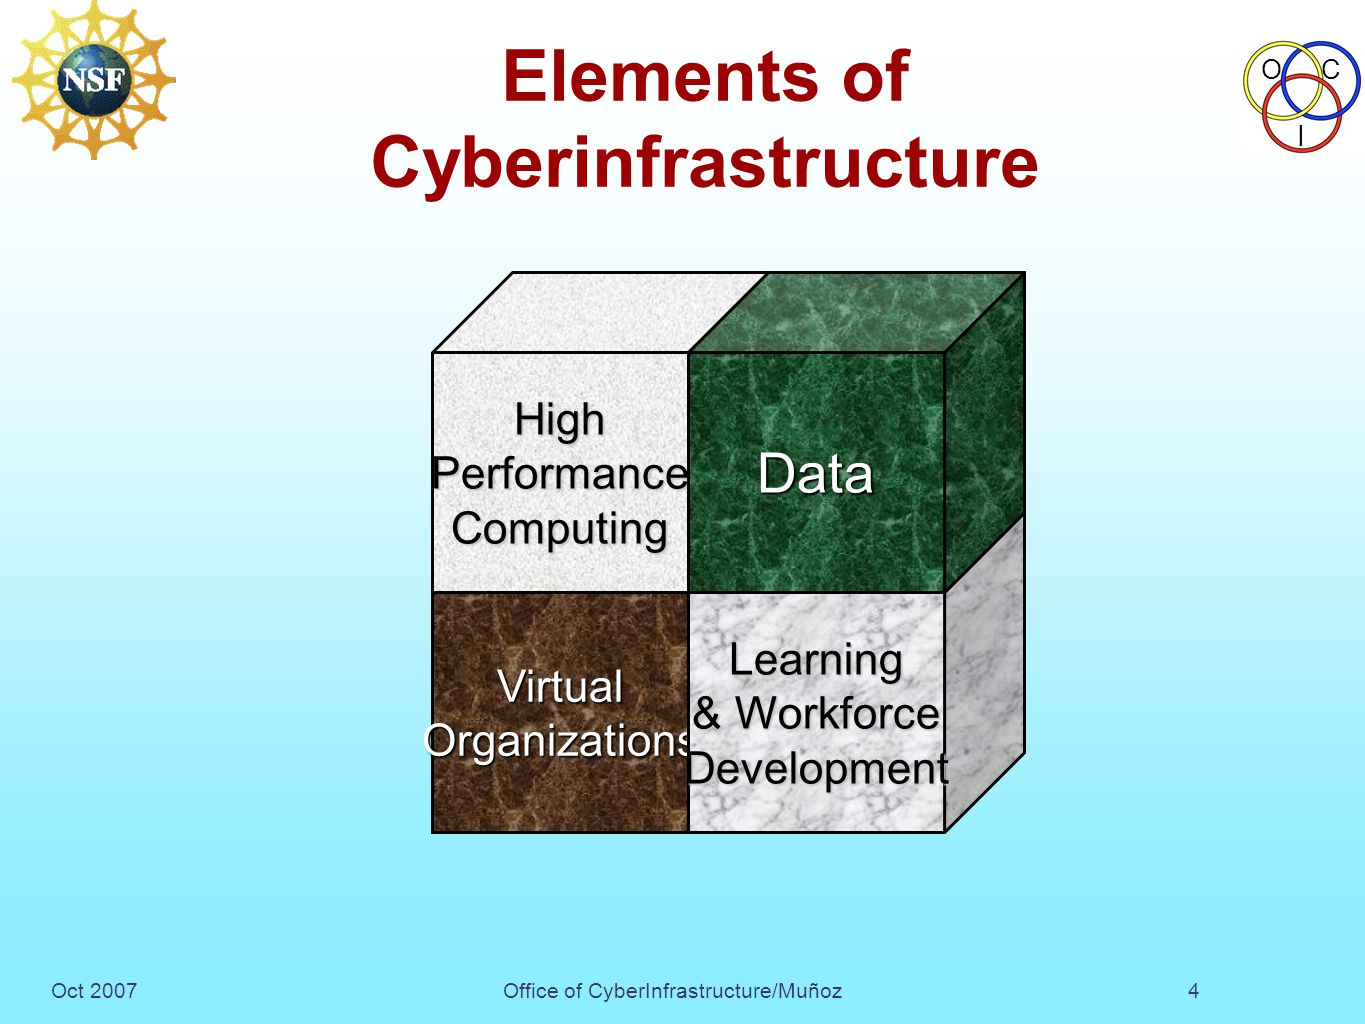 Oct 2007Office of CyberInfrastructure/Muñoz OC I 4 Elements of Cyberinfrastructure VirtualOrganizations HighPerformanceComputing Learning & Workforce Development Data